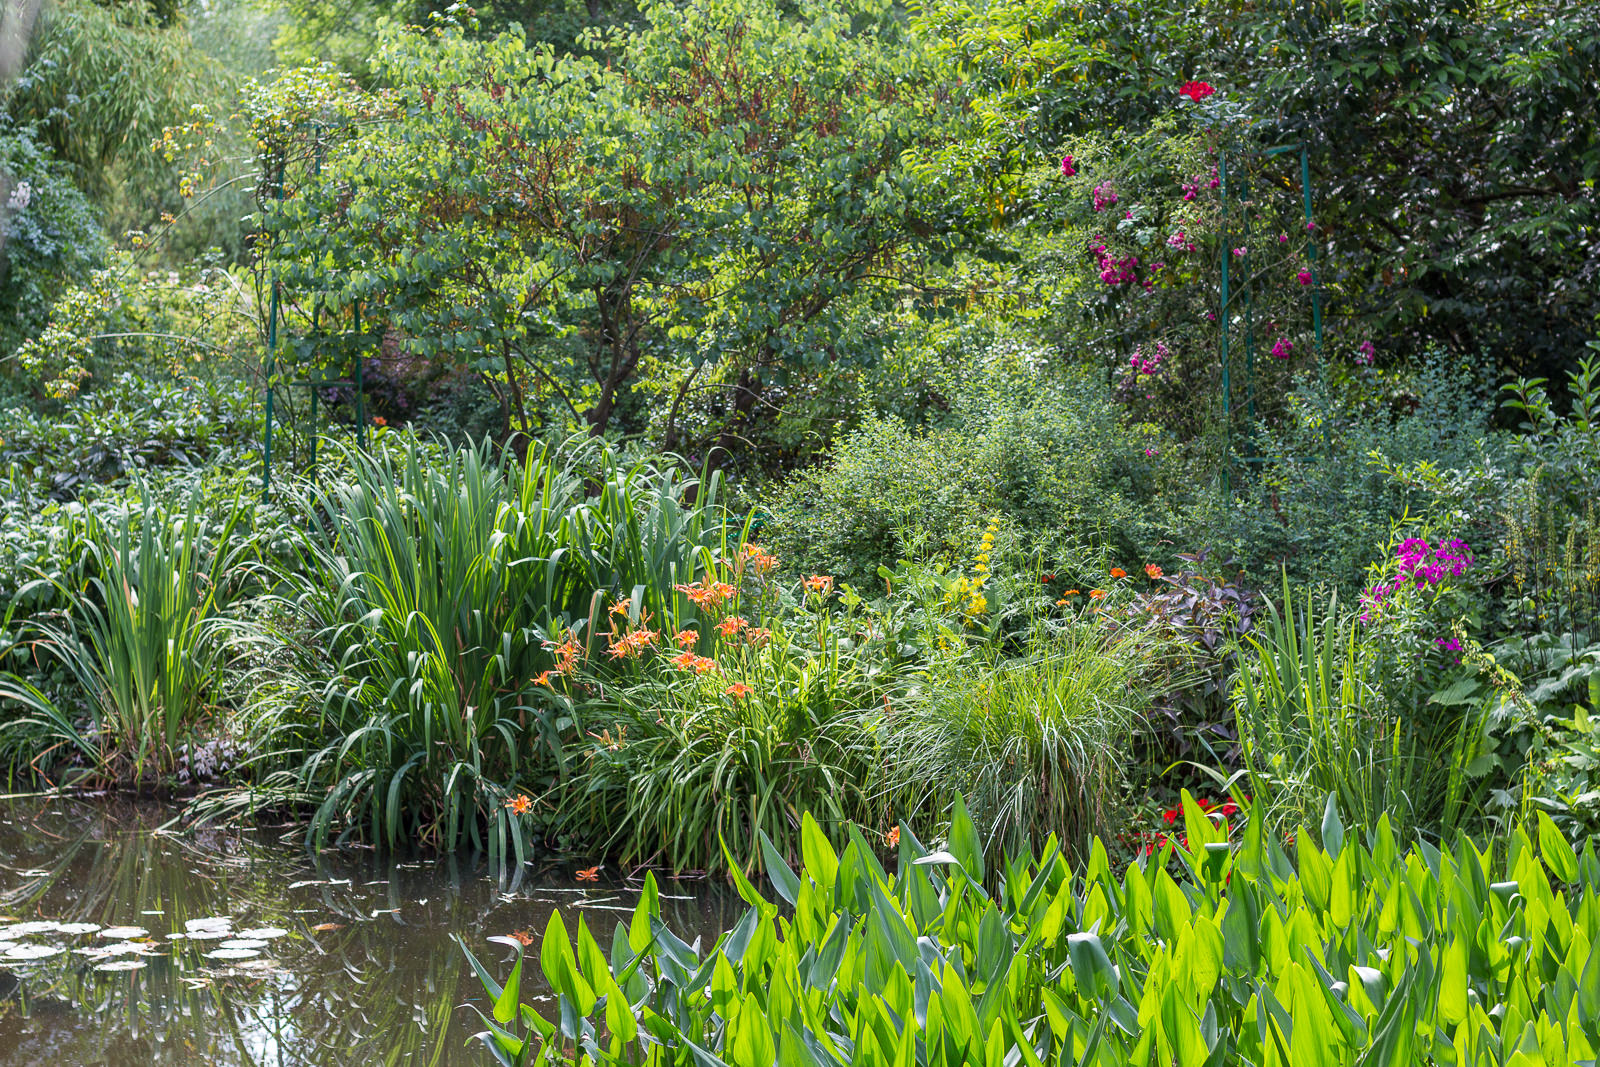 Normandie, Eure, Giverny, Garden Claude Monet